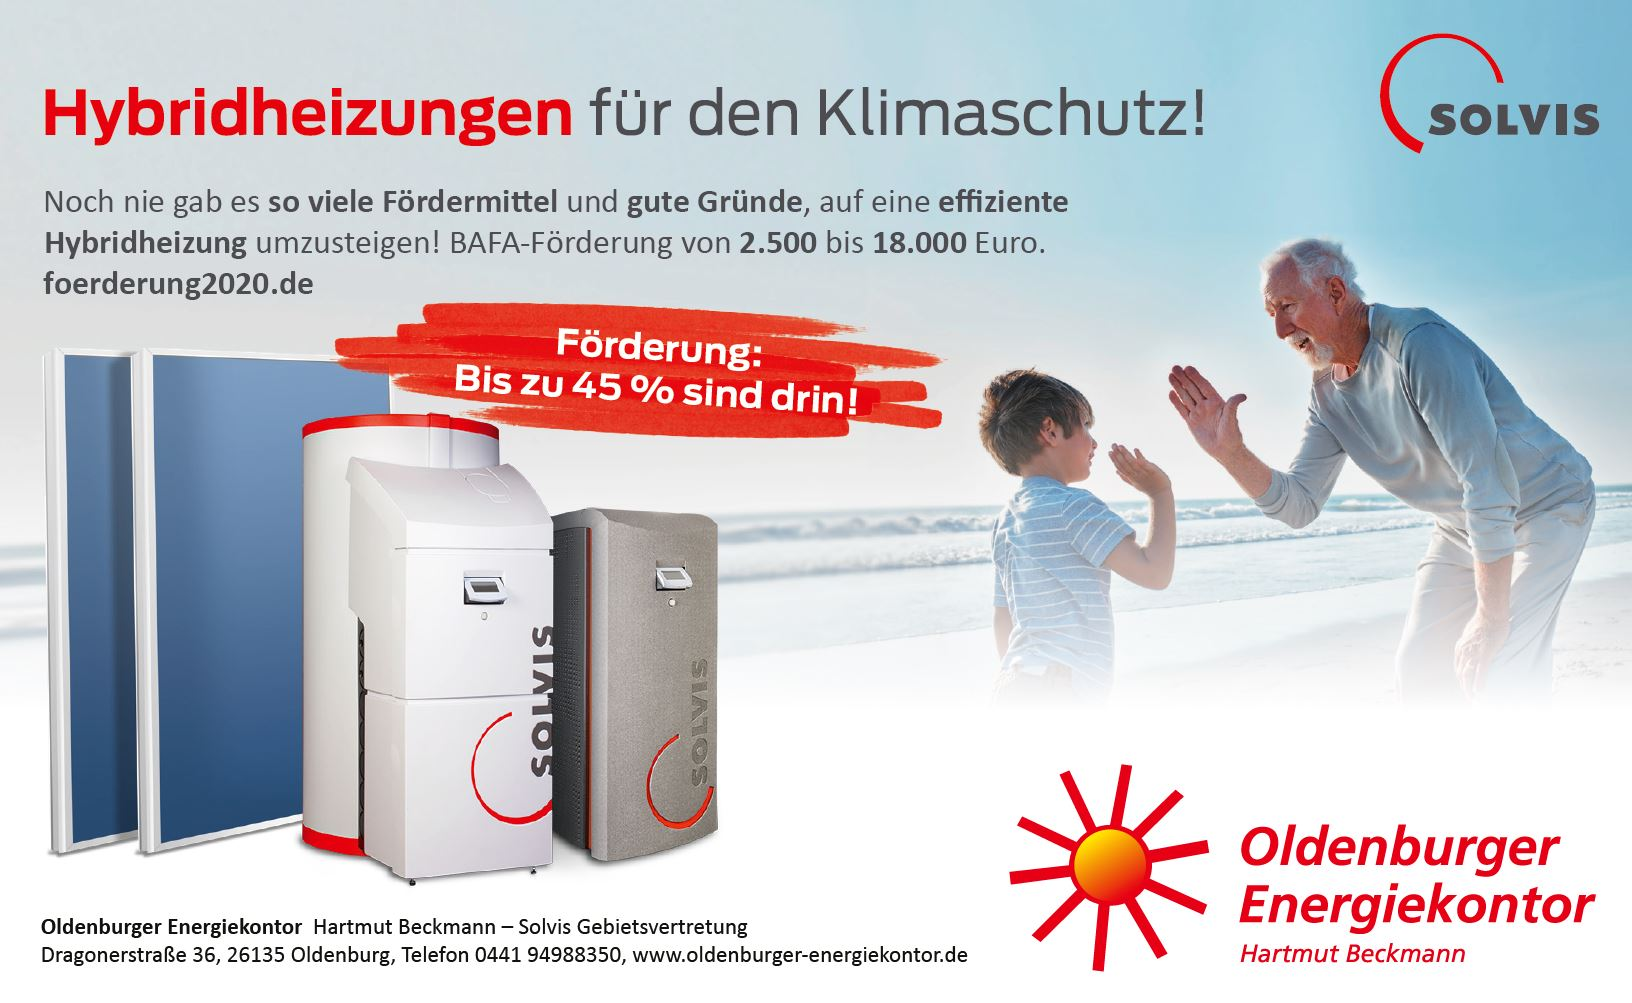 Oldenburger Energiekontor